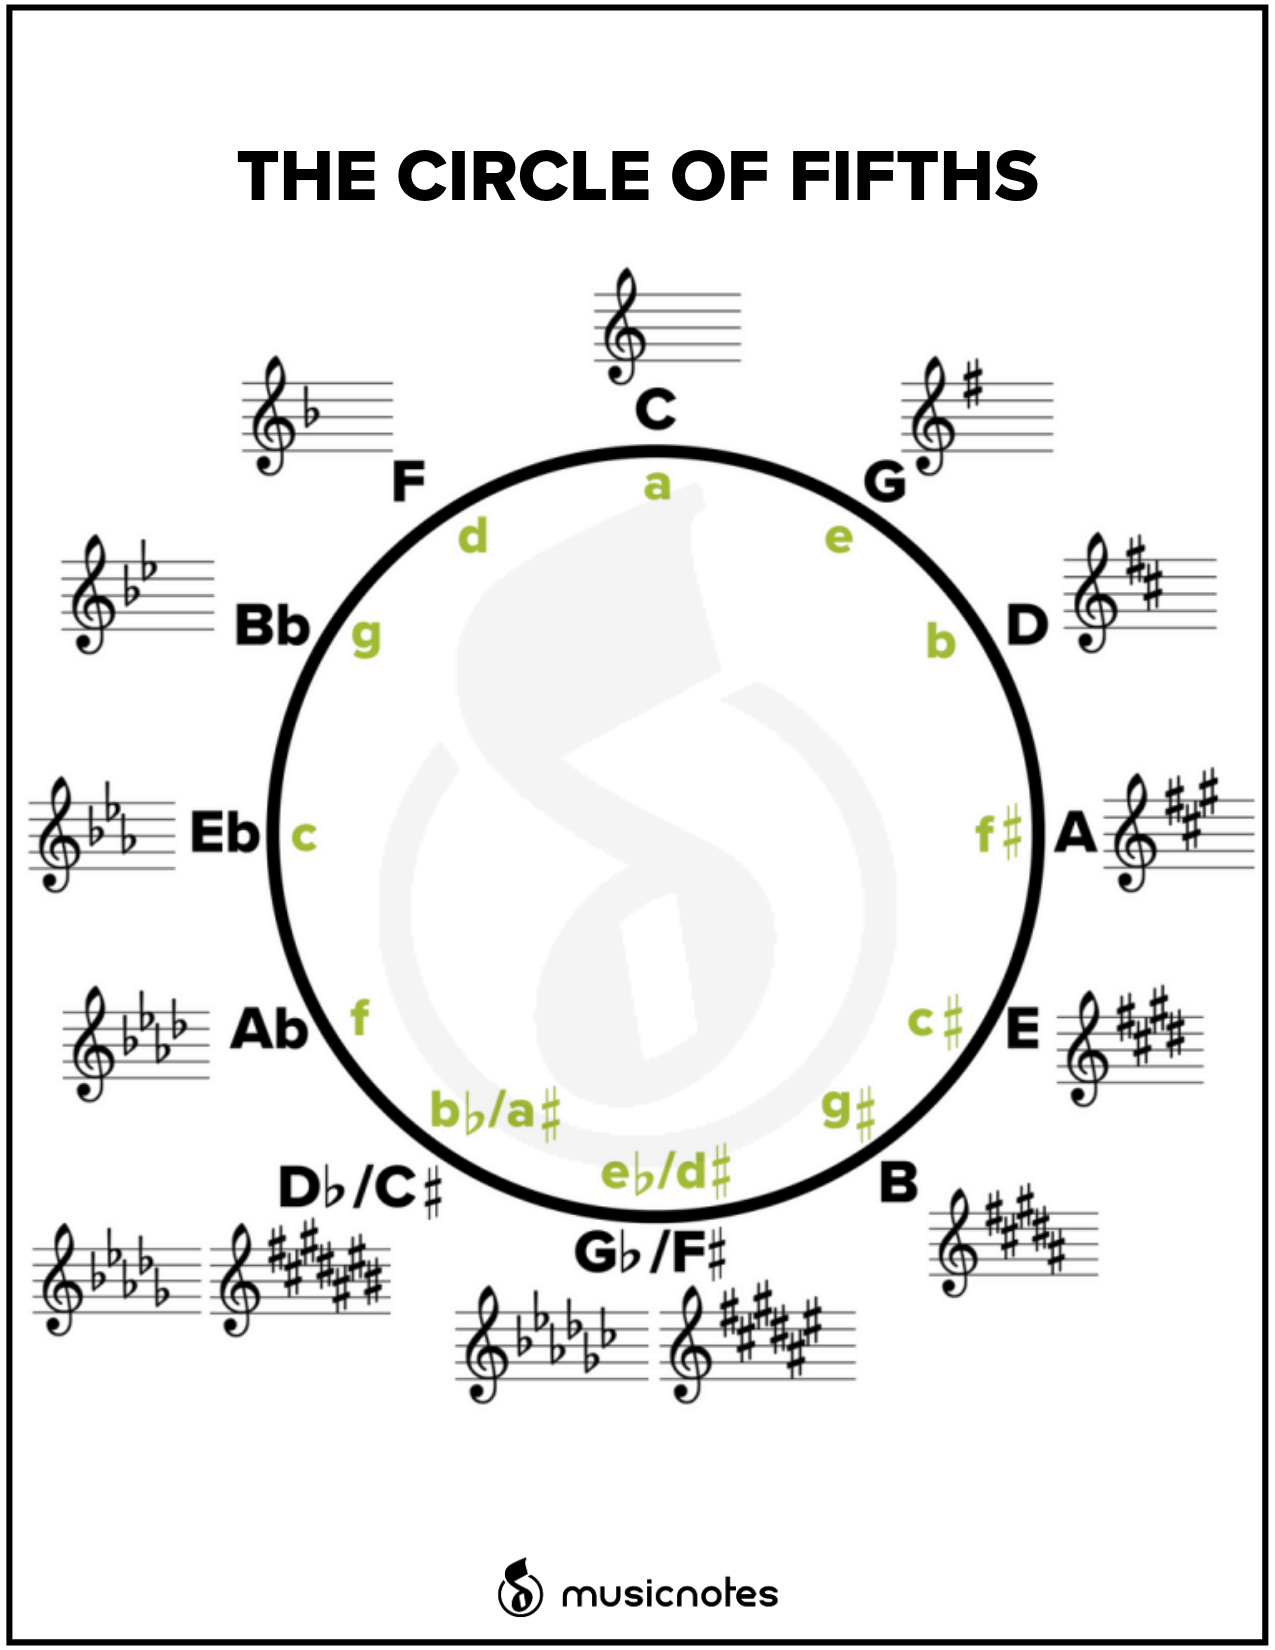 photo relating to Circle of Fifths Printable titled Printable Circle Of 5th Diagram Pdf - instances desk